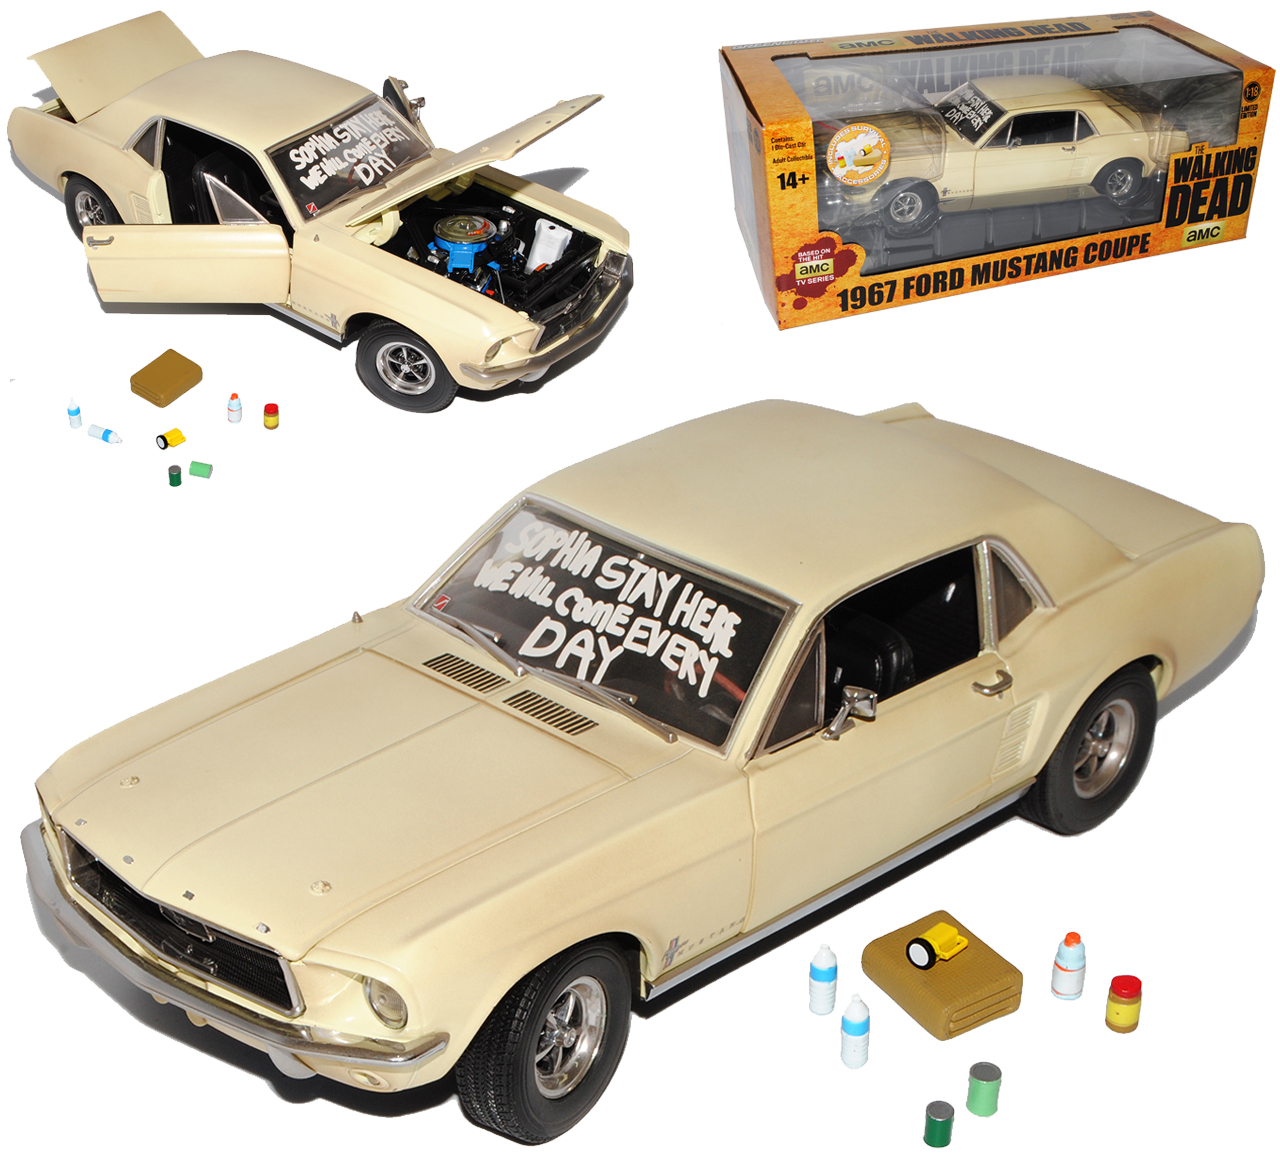 Ford Mustang Coupe Beige The Walking Dead 1967 1 18 Greenlight Modell Auto mit..